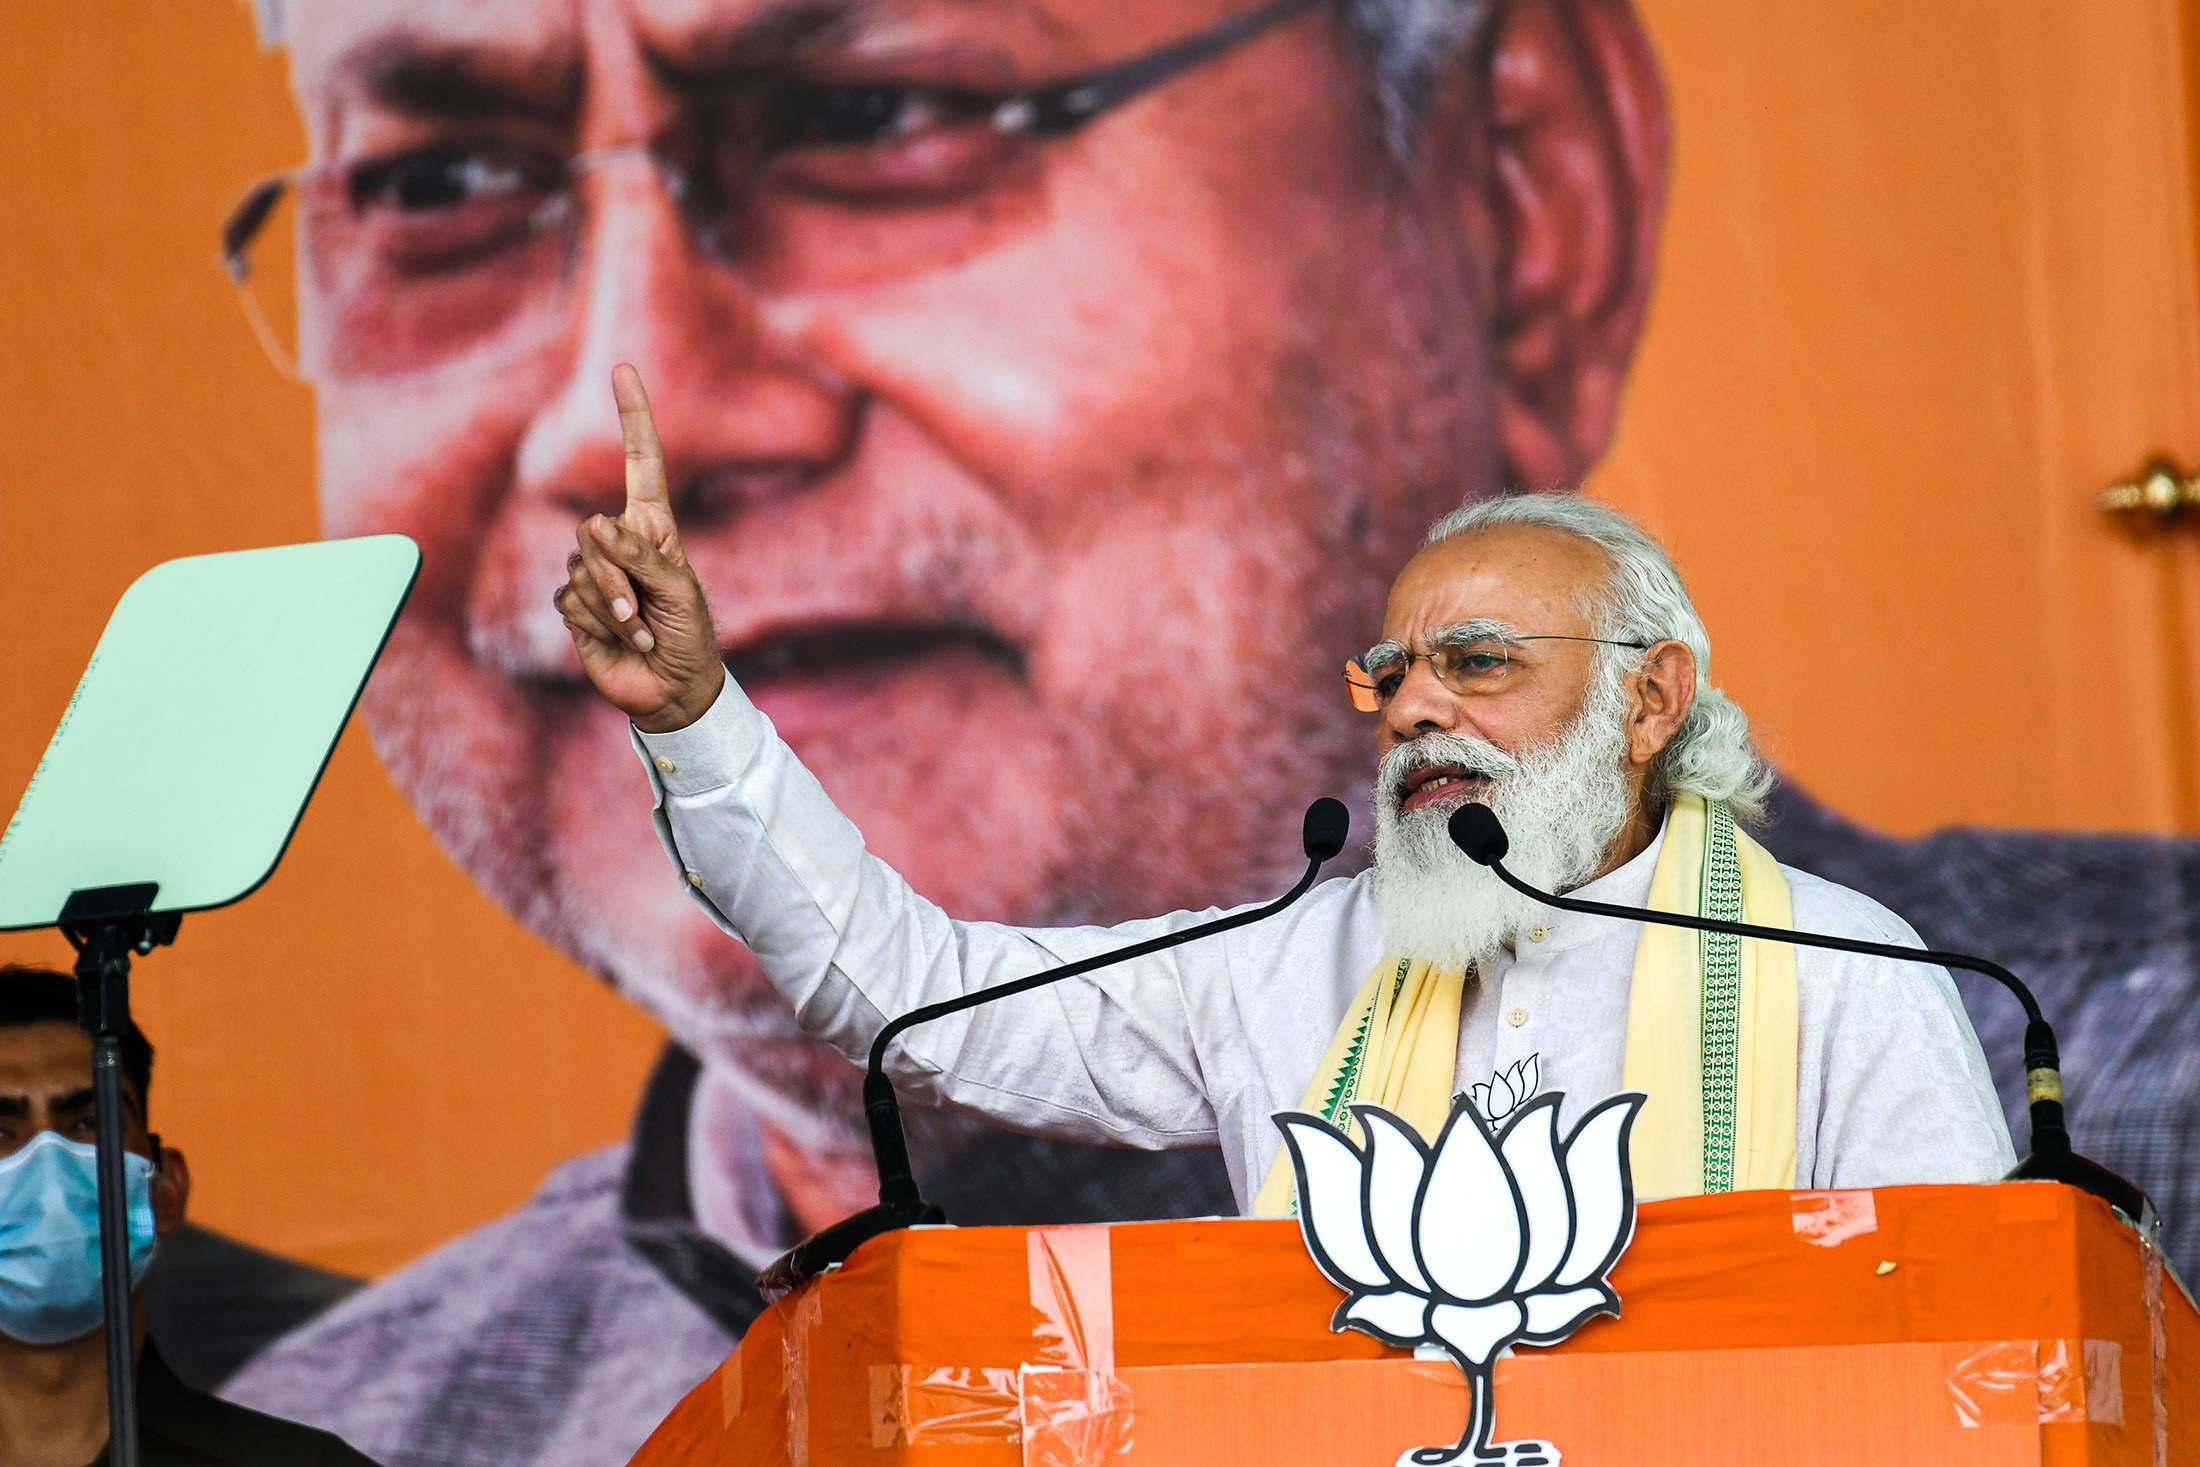 Setback for Modi with key India state poll loss